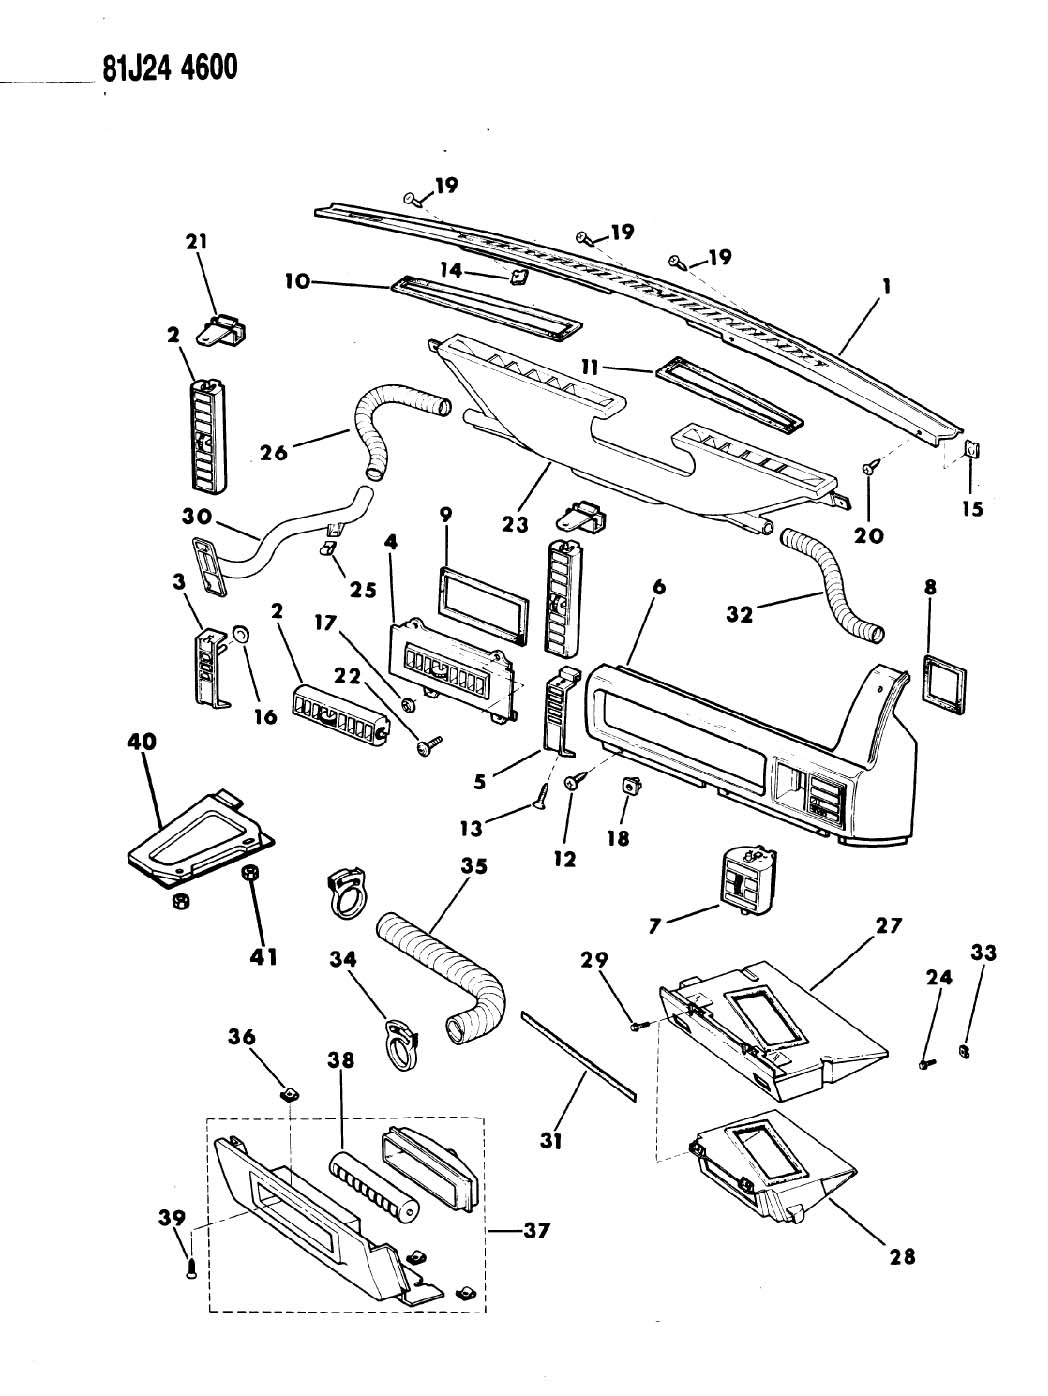 Cadillac Parts Diagram Great Design Of Wiring Fuse Box In 2002 Deville 1983 Auto Body Diagrams Online